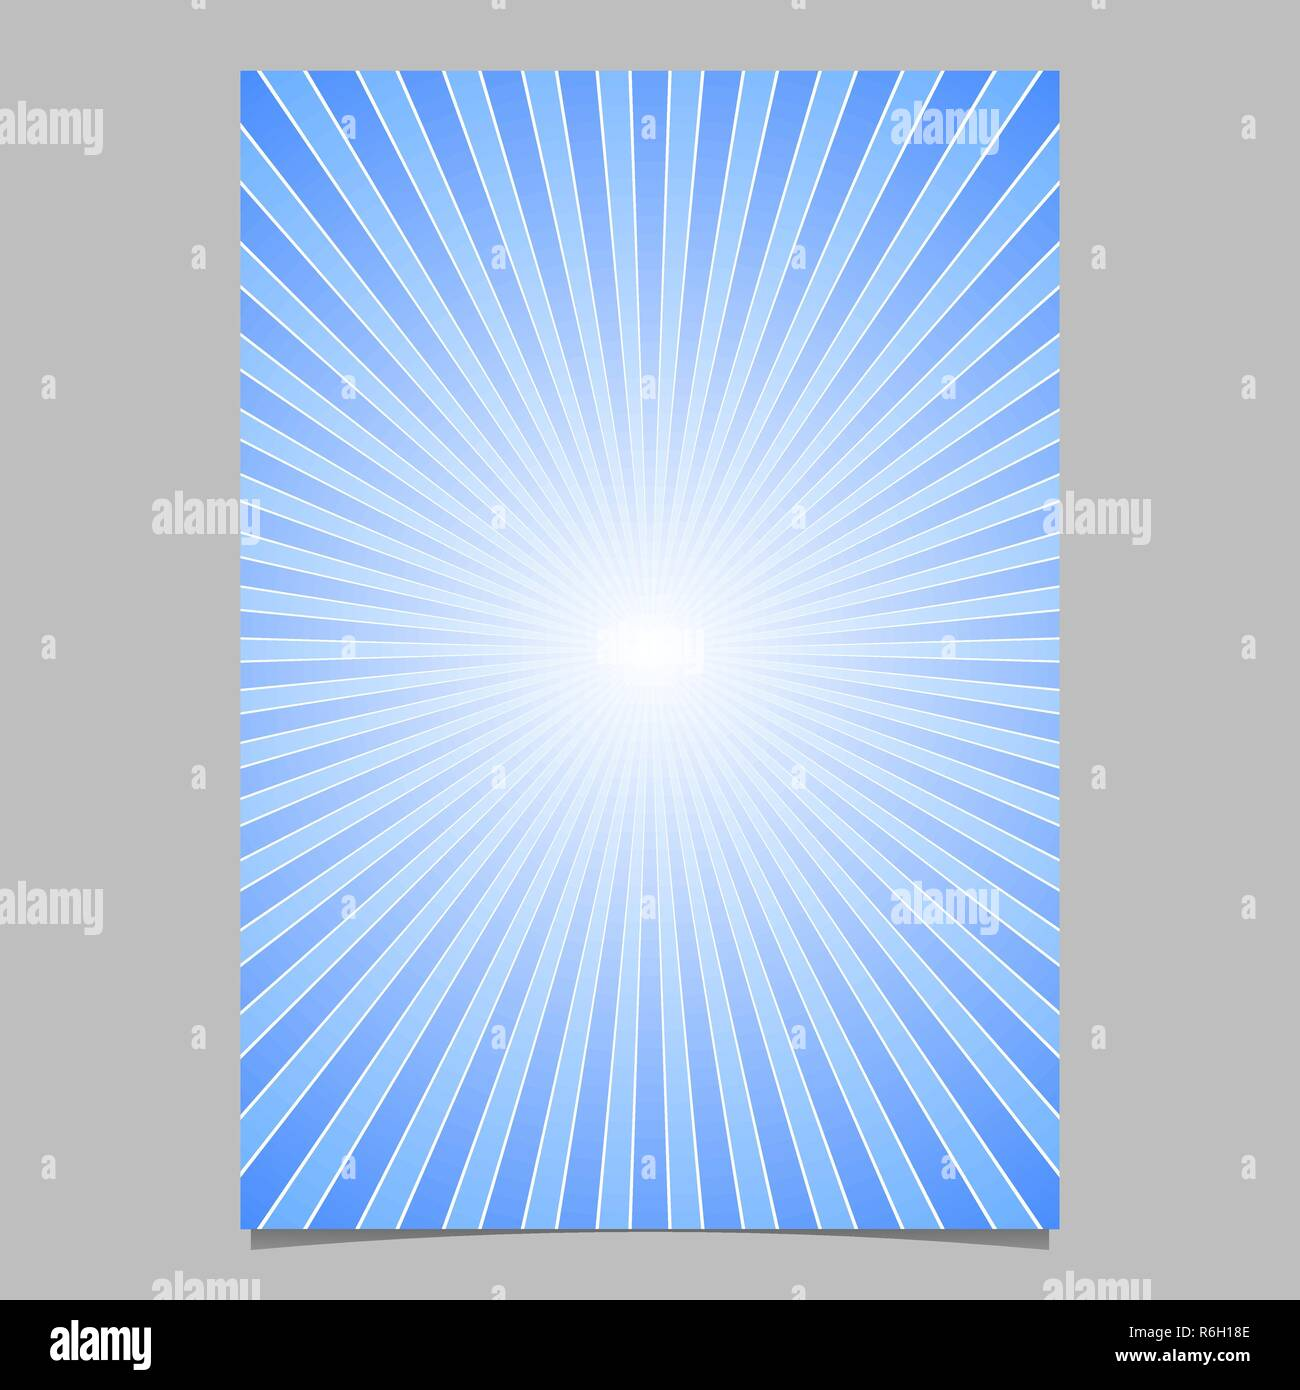 dbf62b2d16 Blue sun burst page template - gradient brochure background design with  striped rays